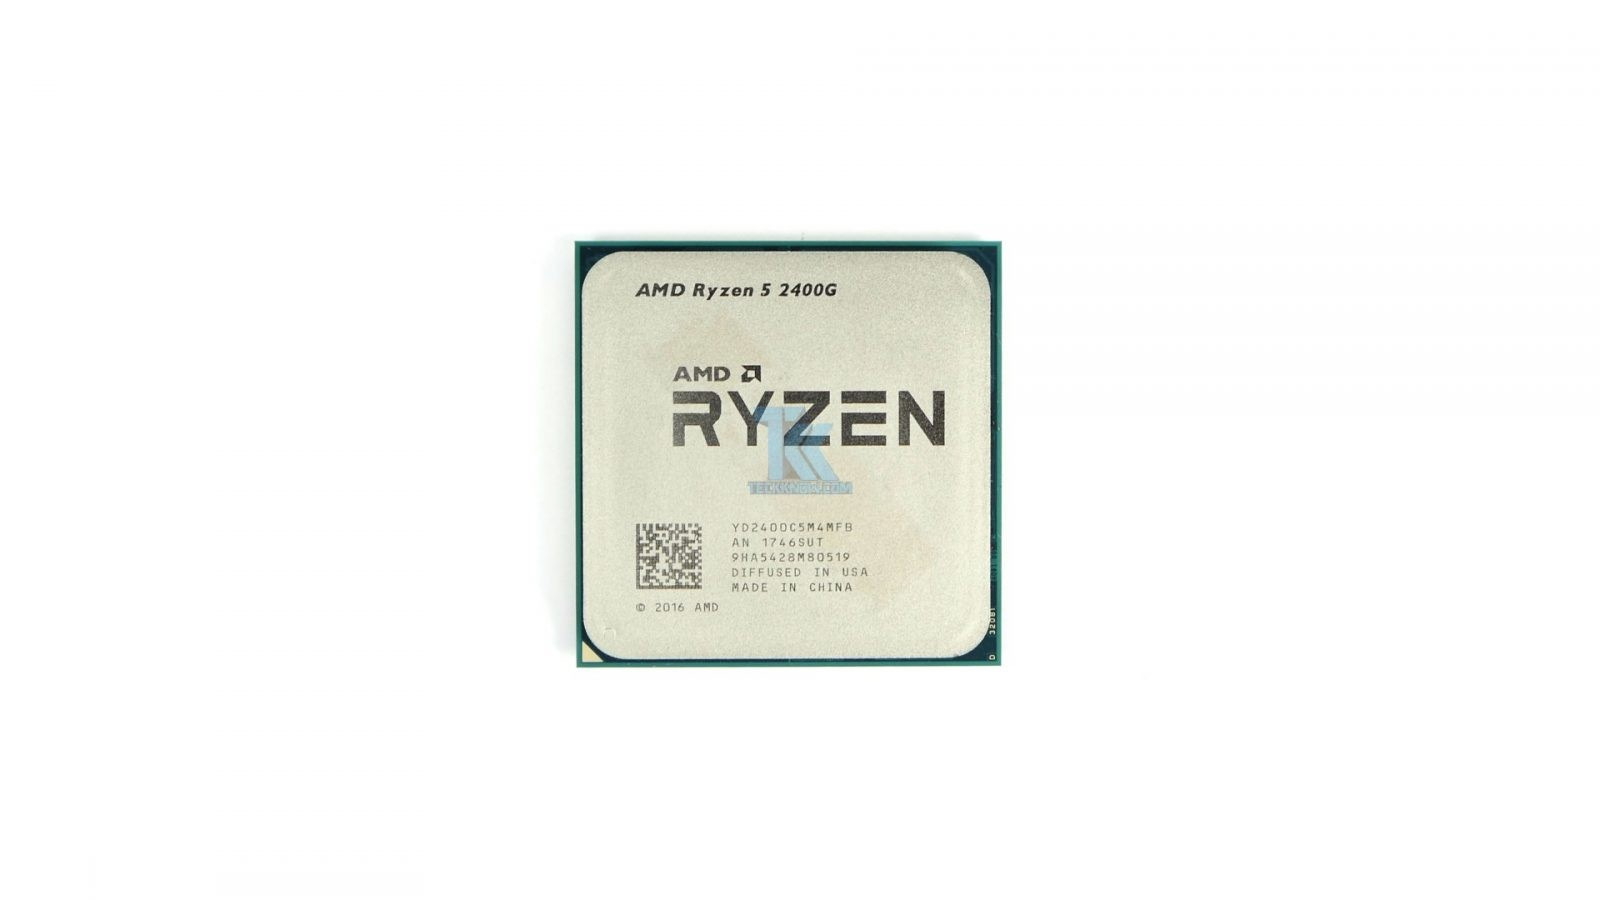 AMD Ryzen 5 2400G with MSI B350 Gaming Plus and B350 PRO-VDH